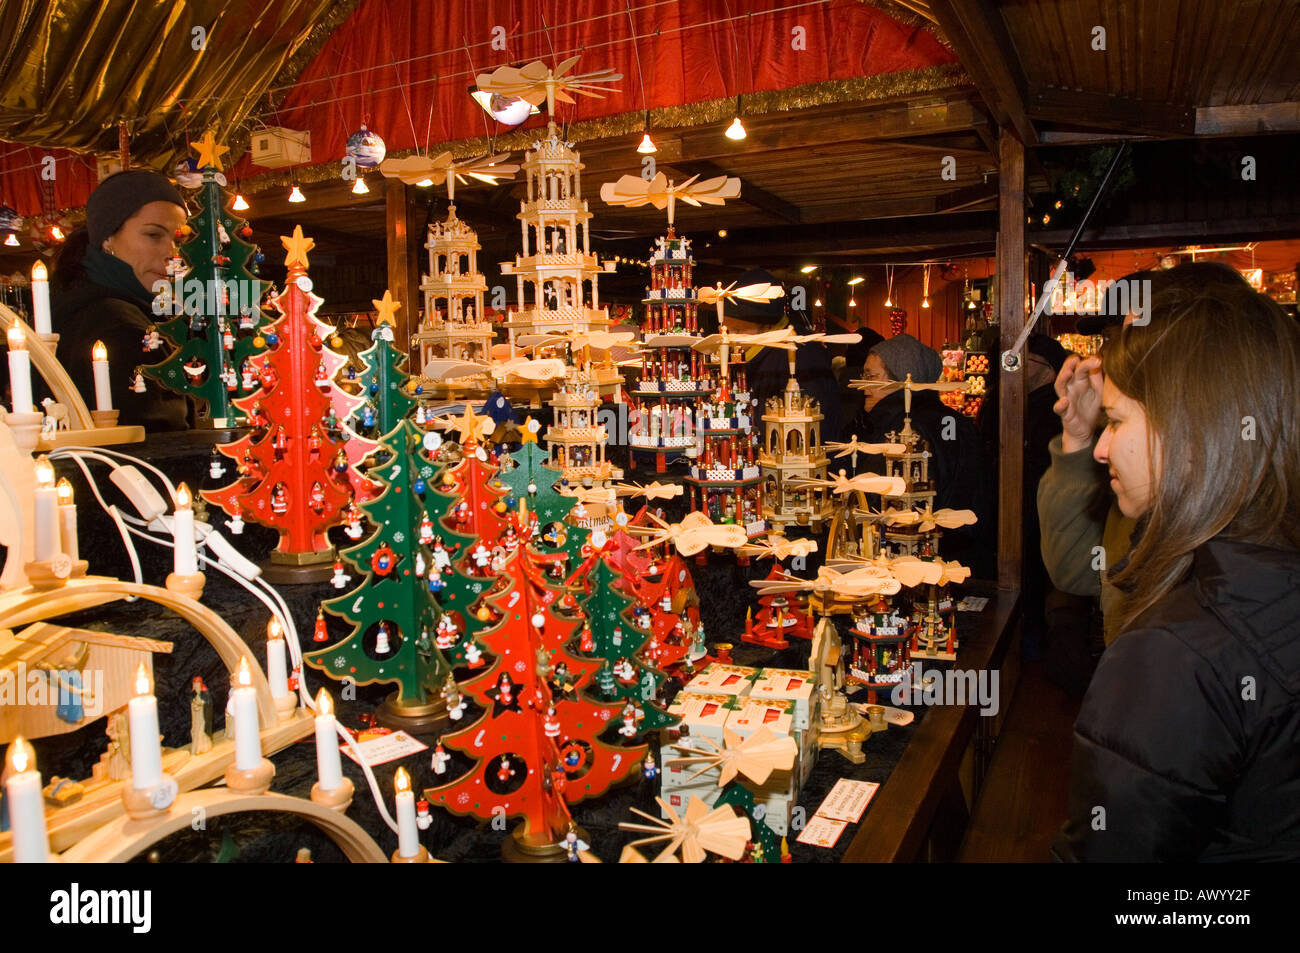 Decorations In Germany During Christmas : Christmas decorations stall at the german market